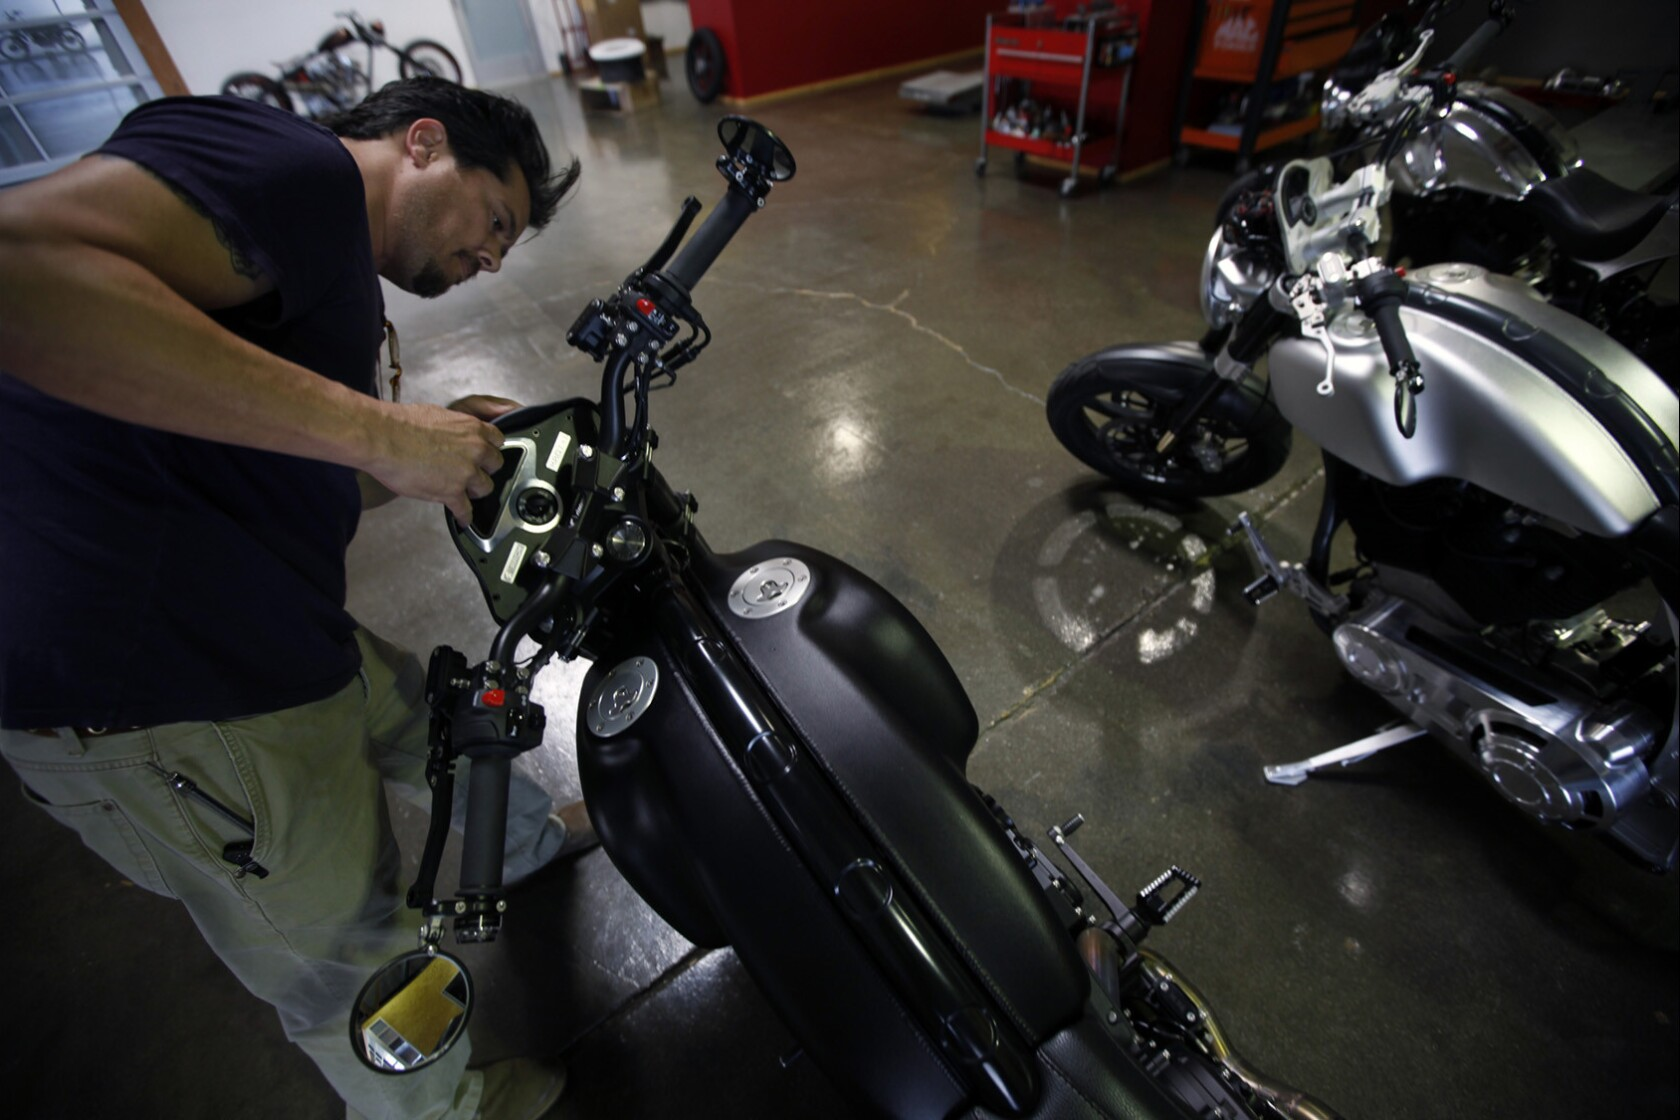 Keanu Reeves' latest production: line of $78,000 motorcycles